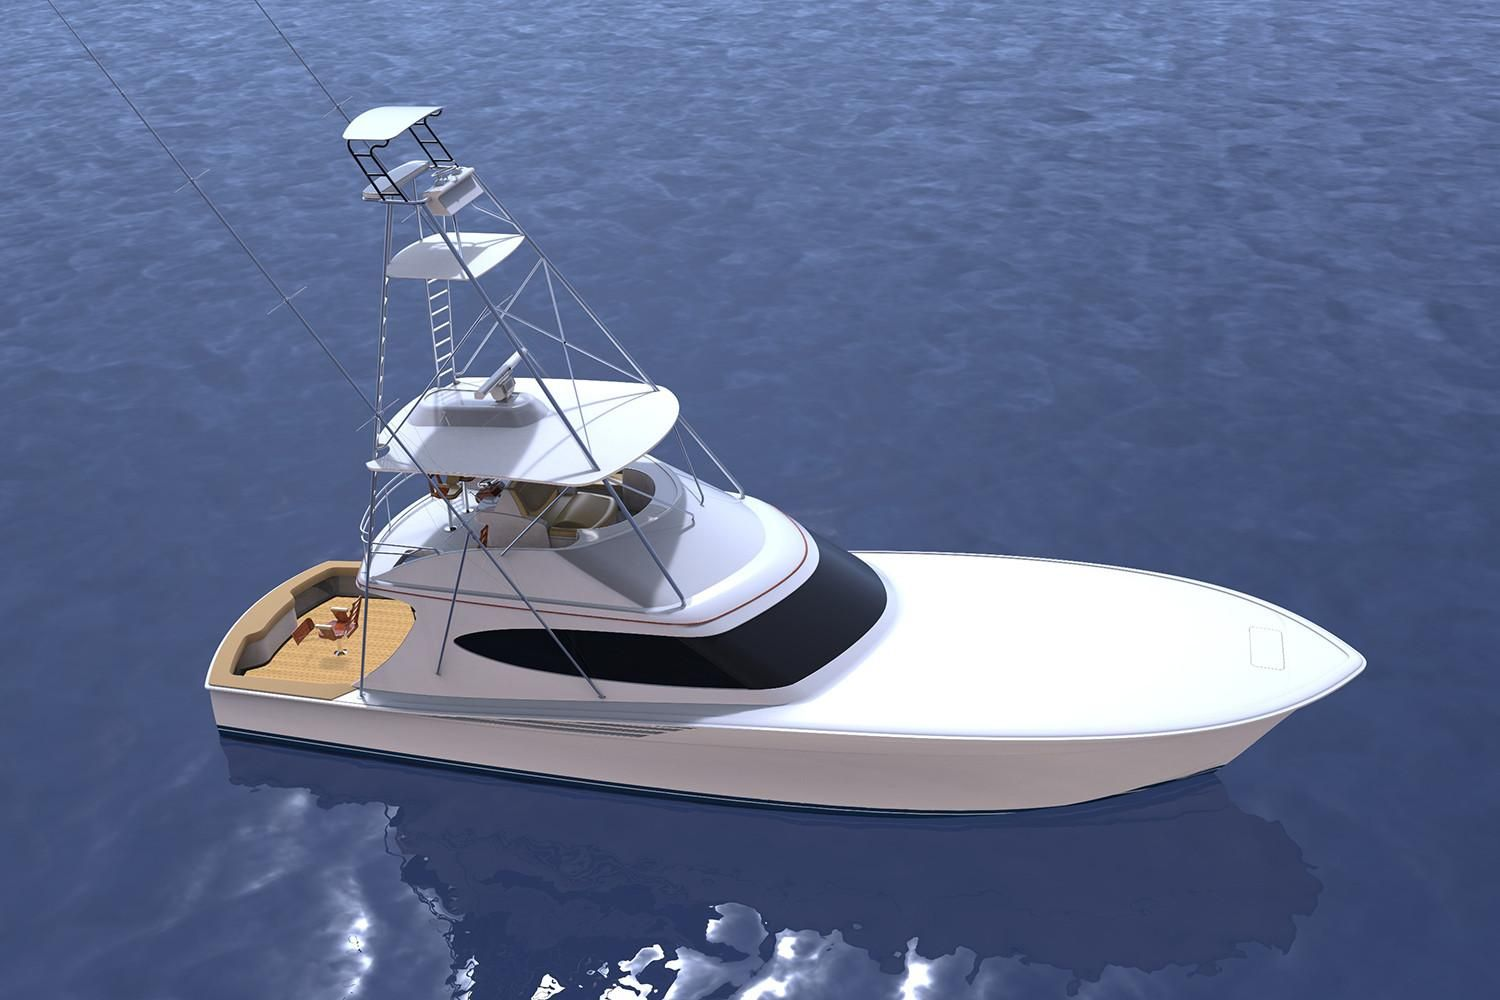 Thumbnail 2 for 2021 Hatteras GT65